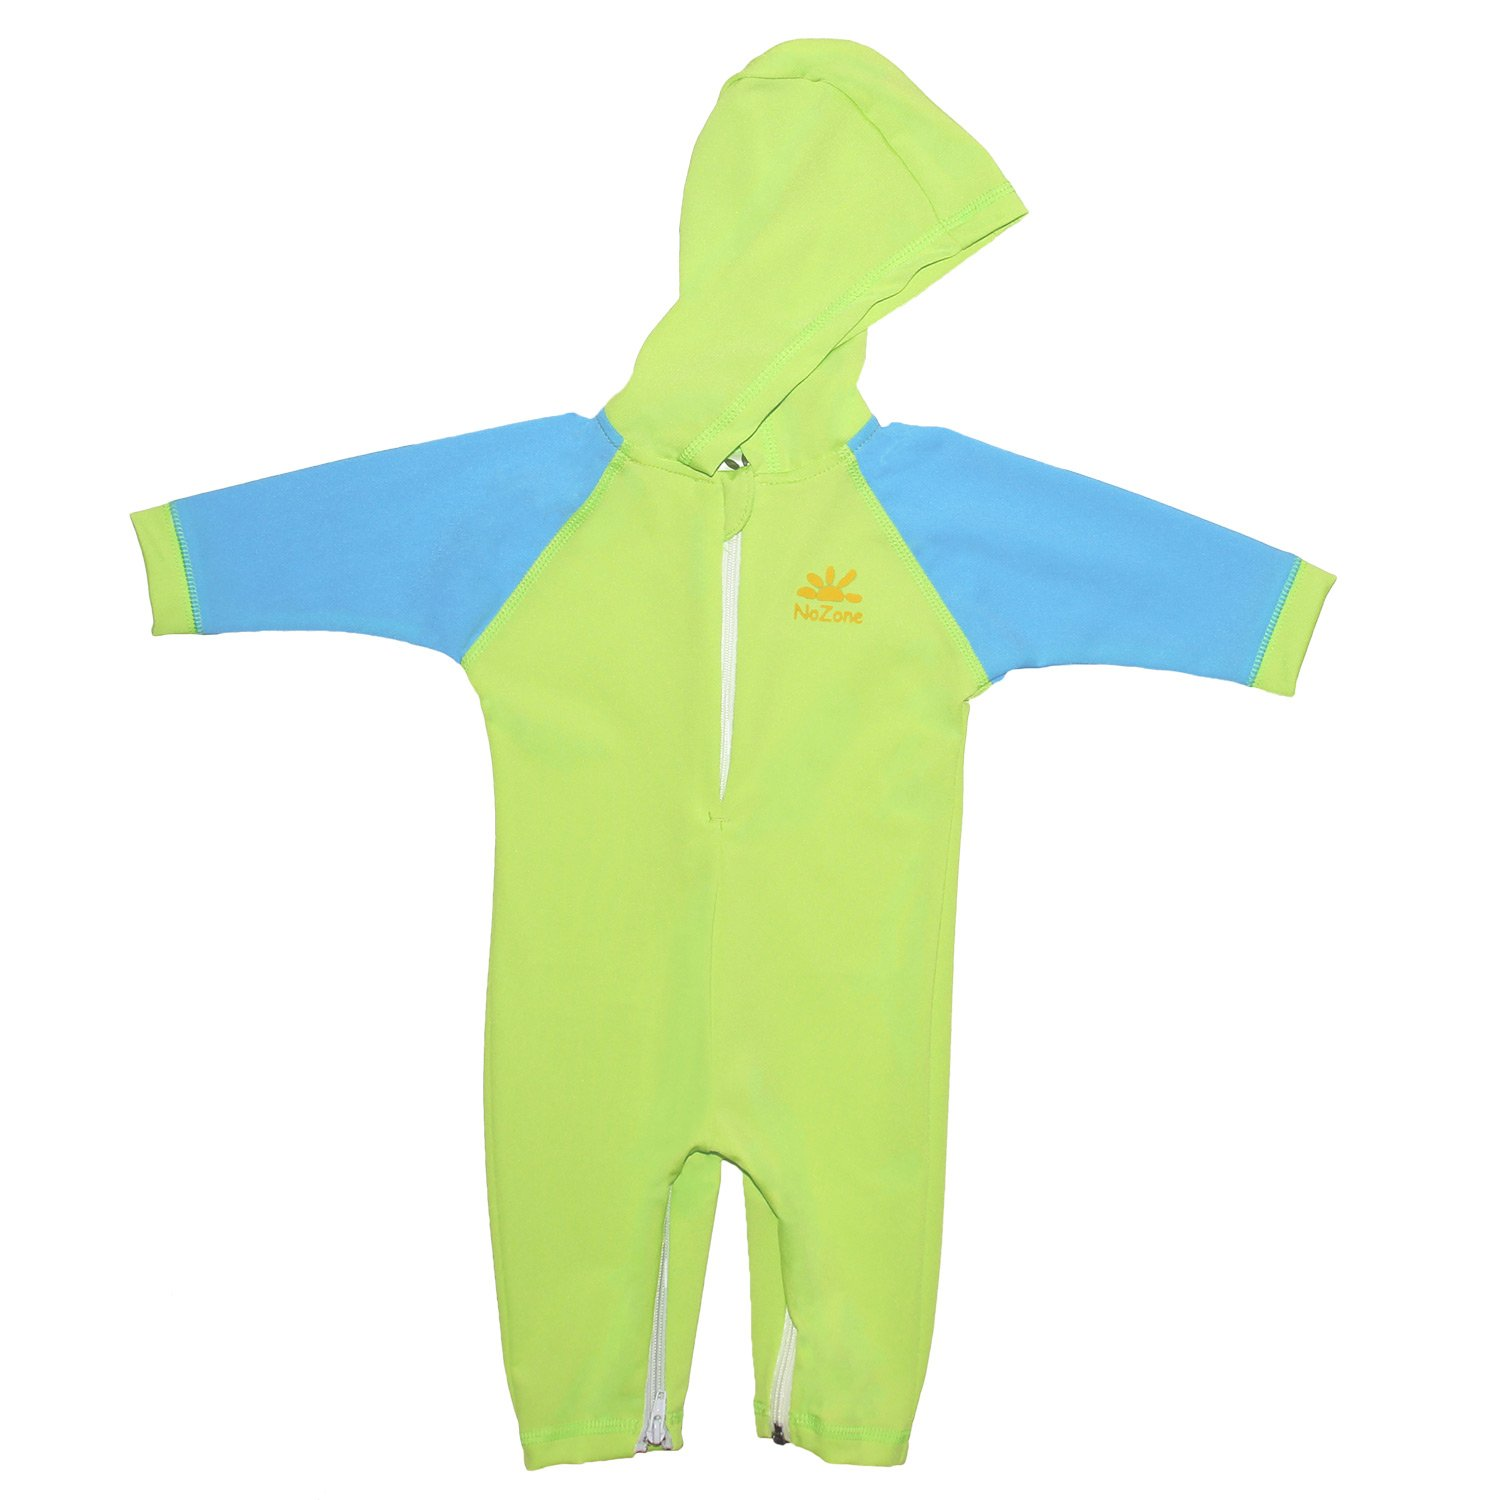 Nozone Kailua Hooded Baby Sun Protective Swimsuit in Lime/Aqua, 24-36 Months 2030lmaa24-36